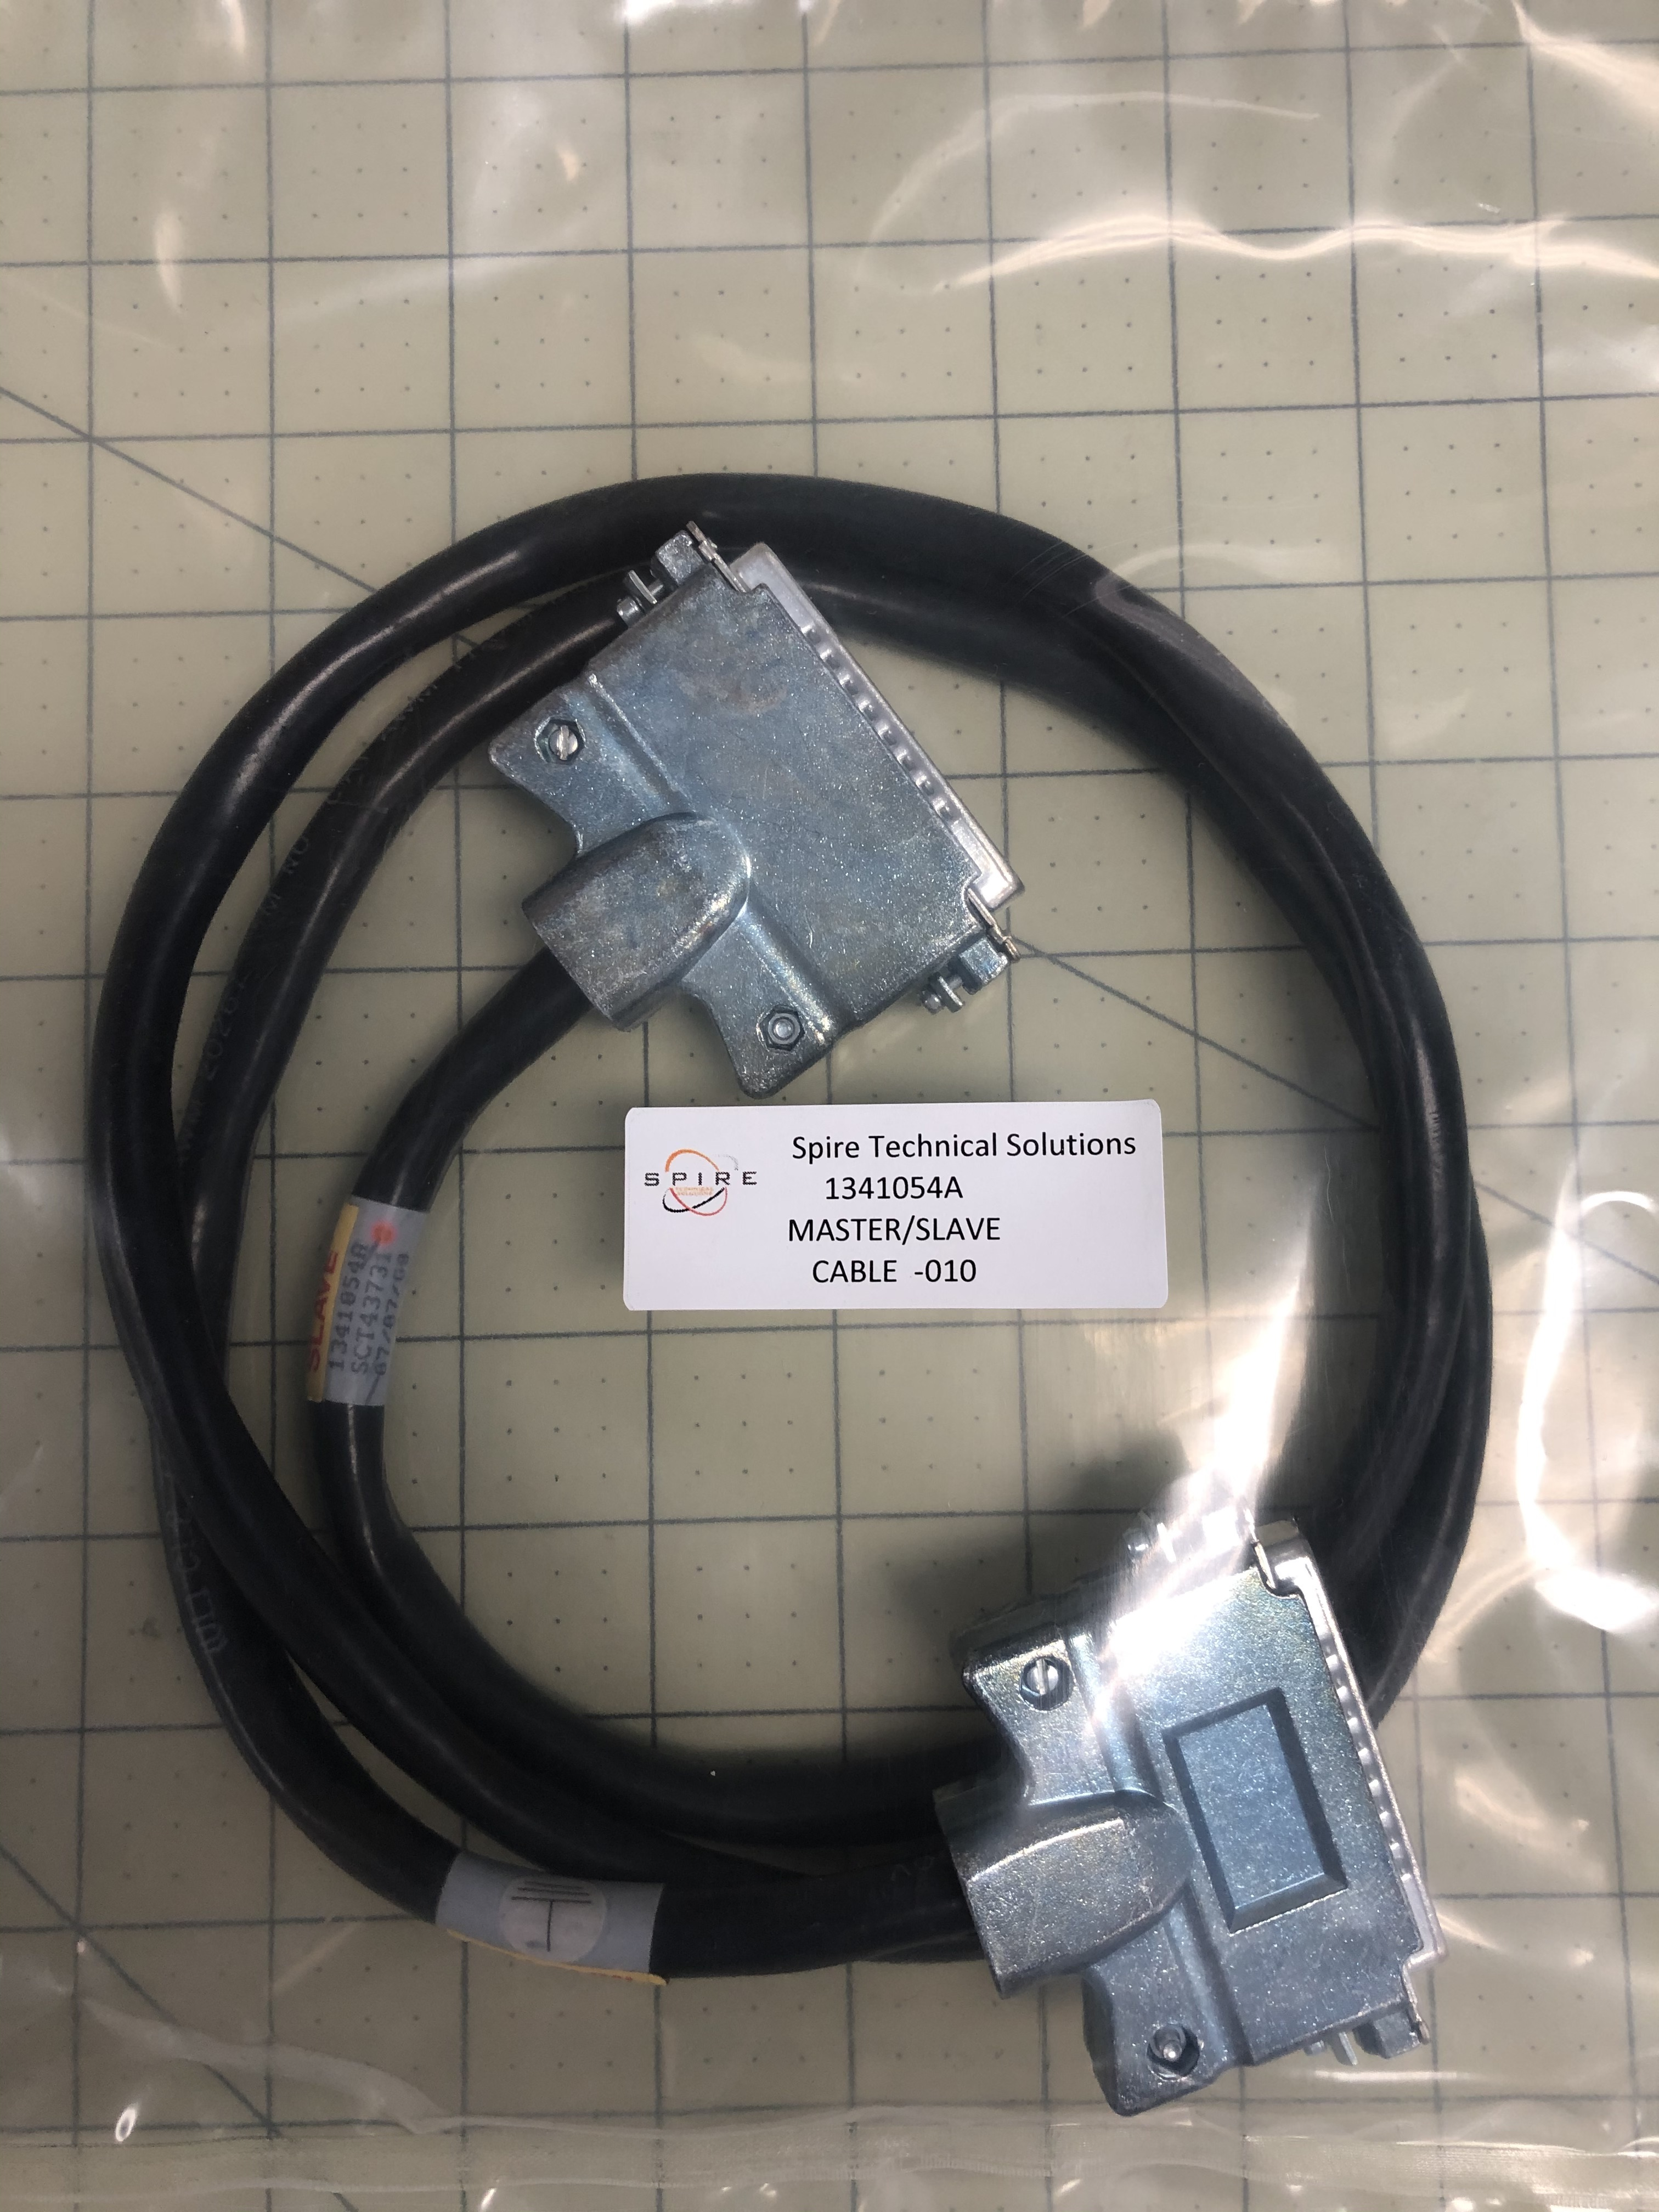 MASTER/SLAVE CABLE